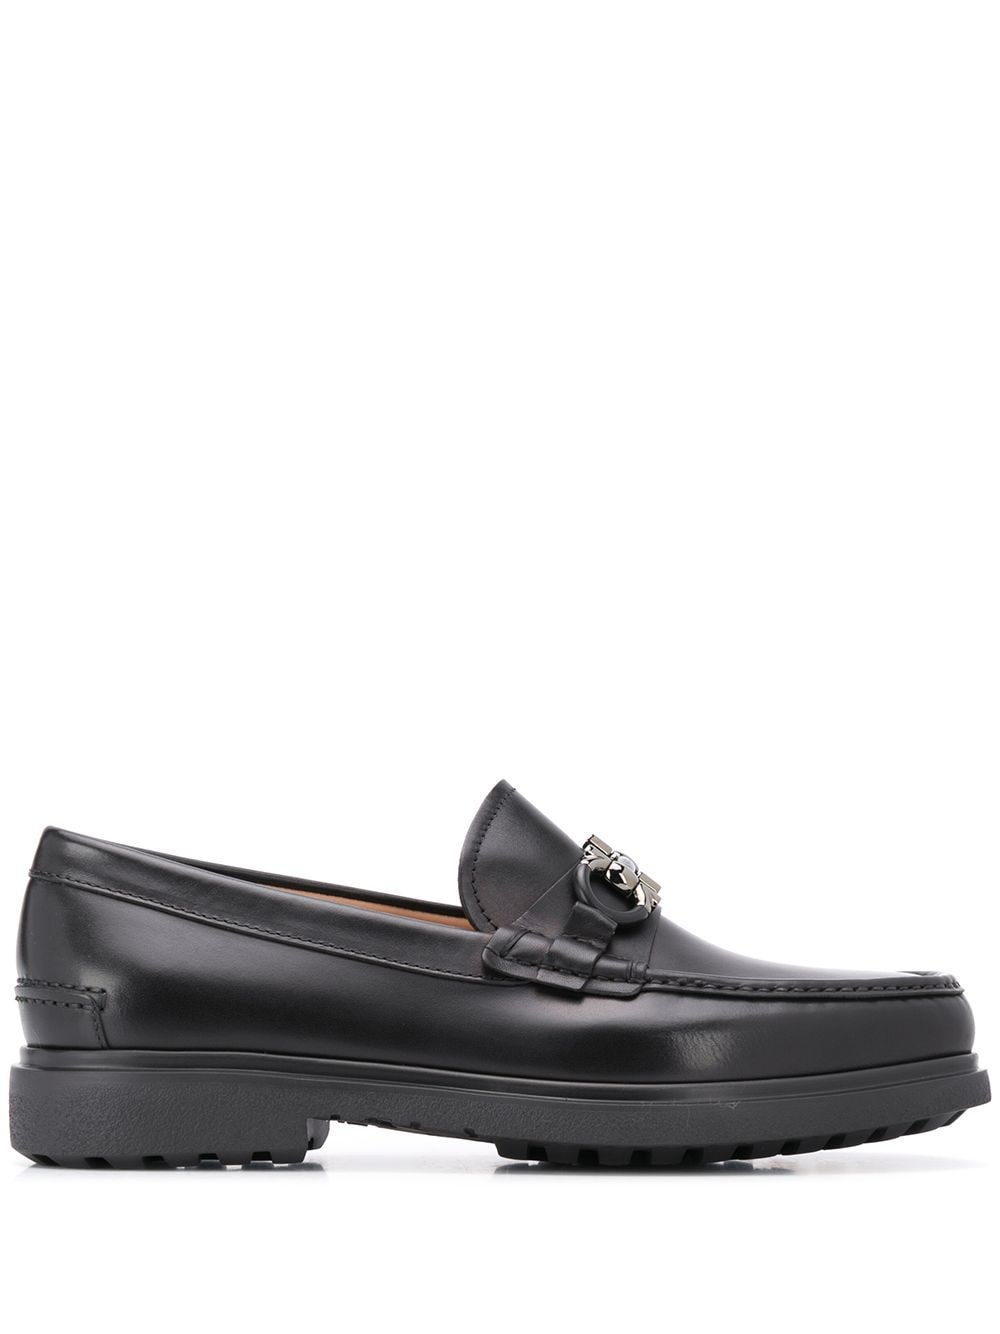 Ready Leather Loafer